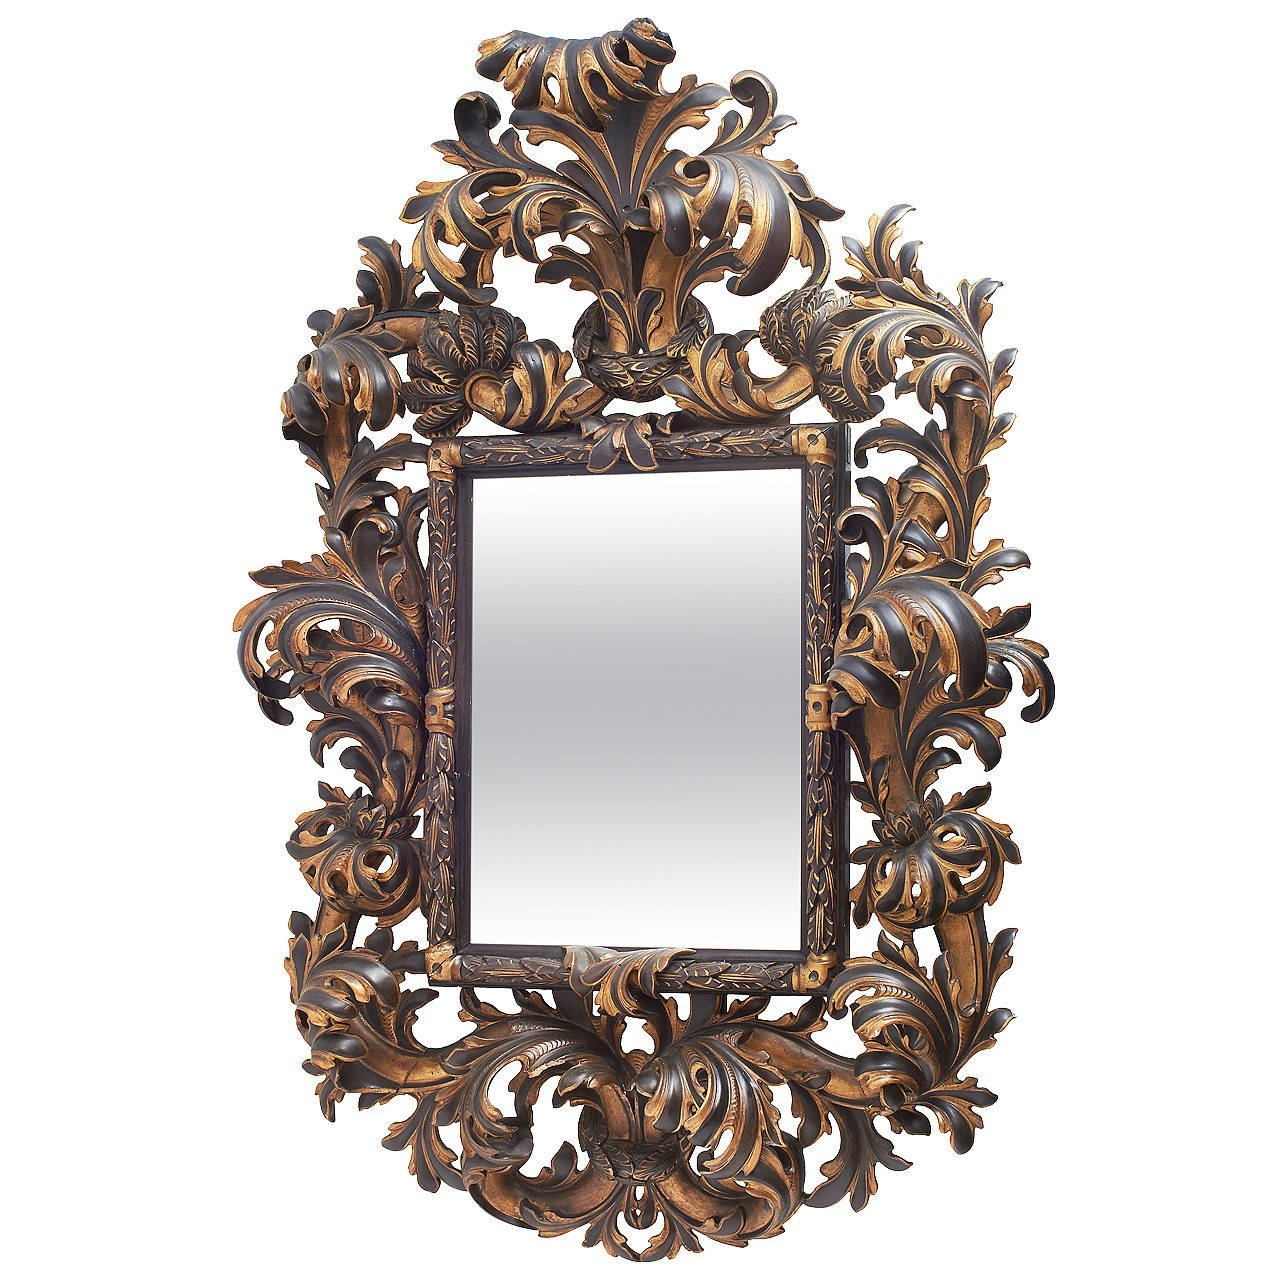 Large Antique Mirror For Sale At 1stdibs In Large Antique Mirror For Sale (Image 9 of 15)